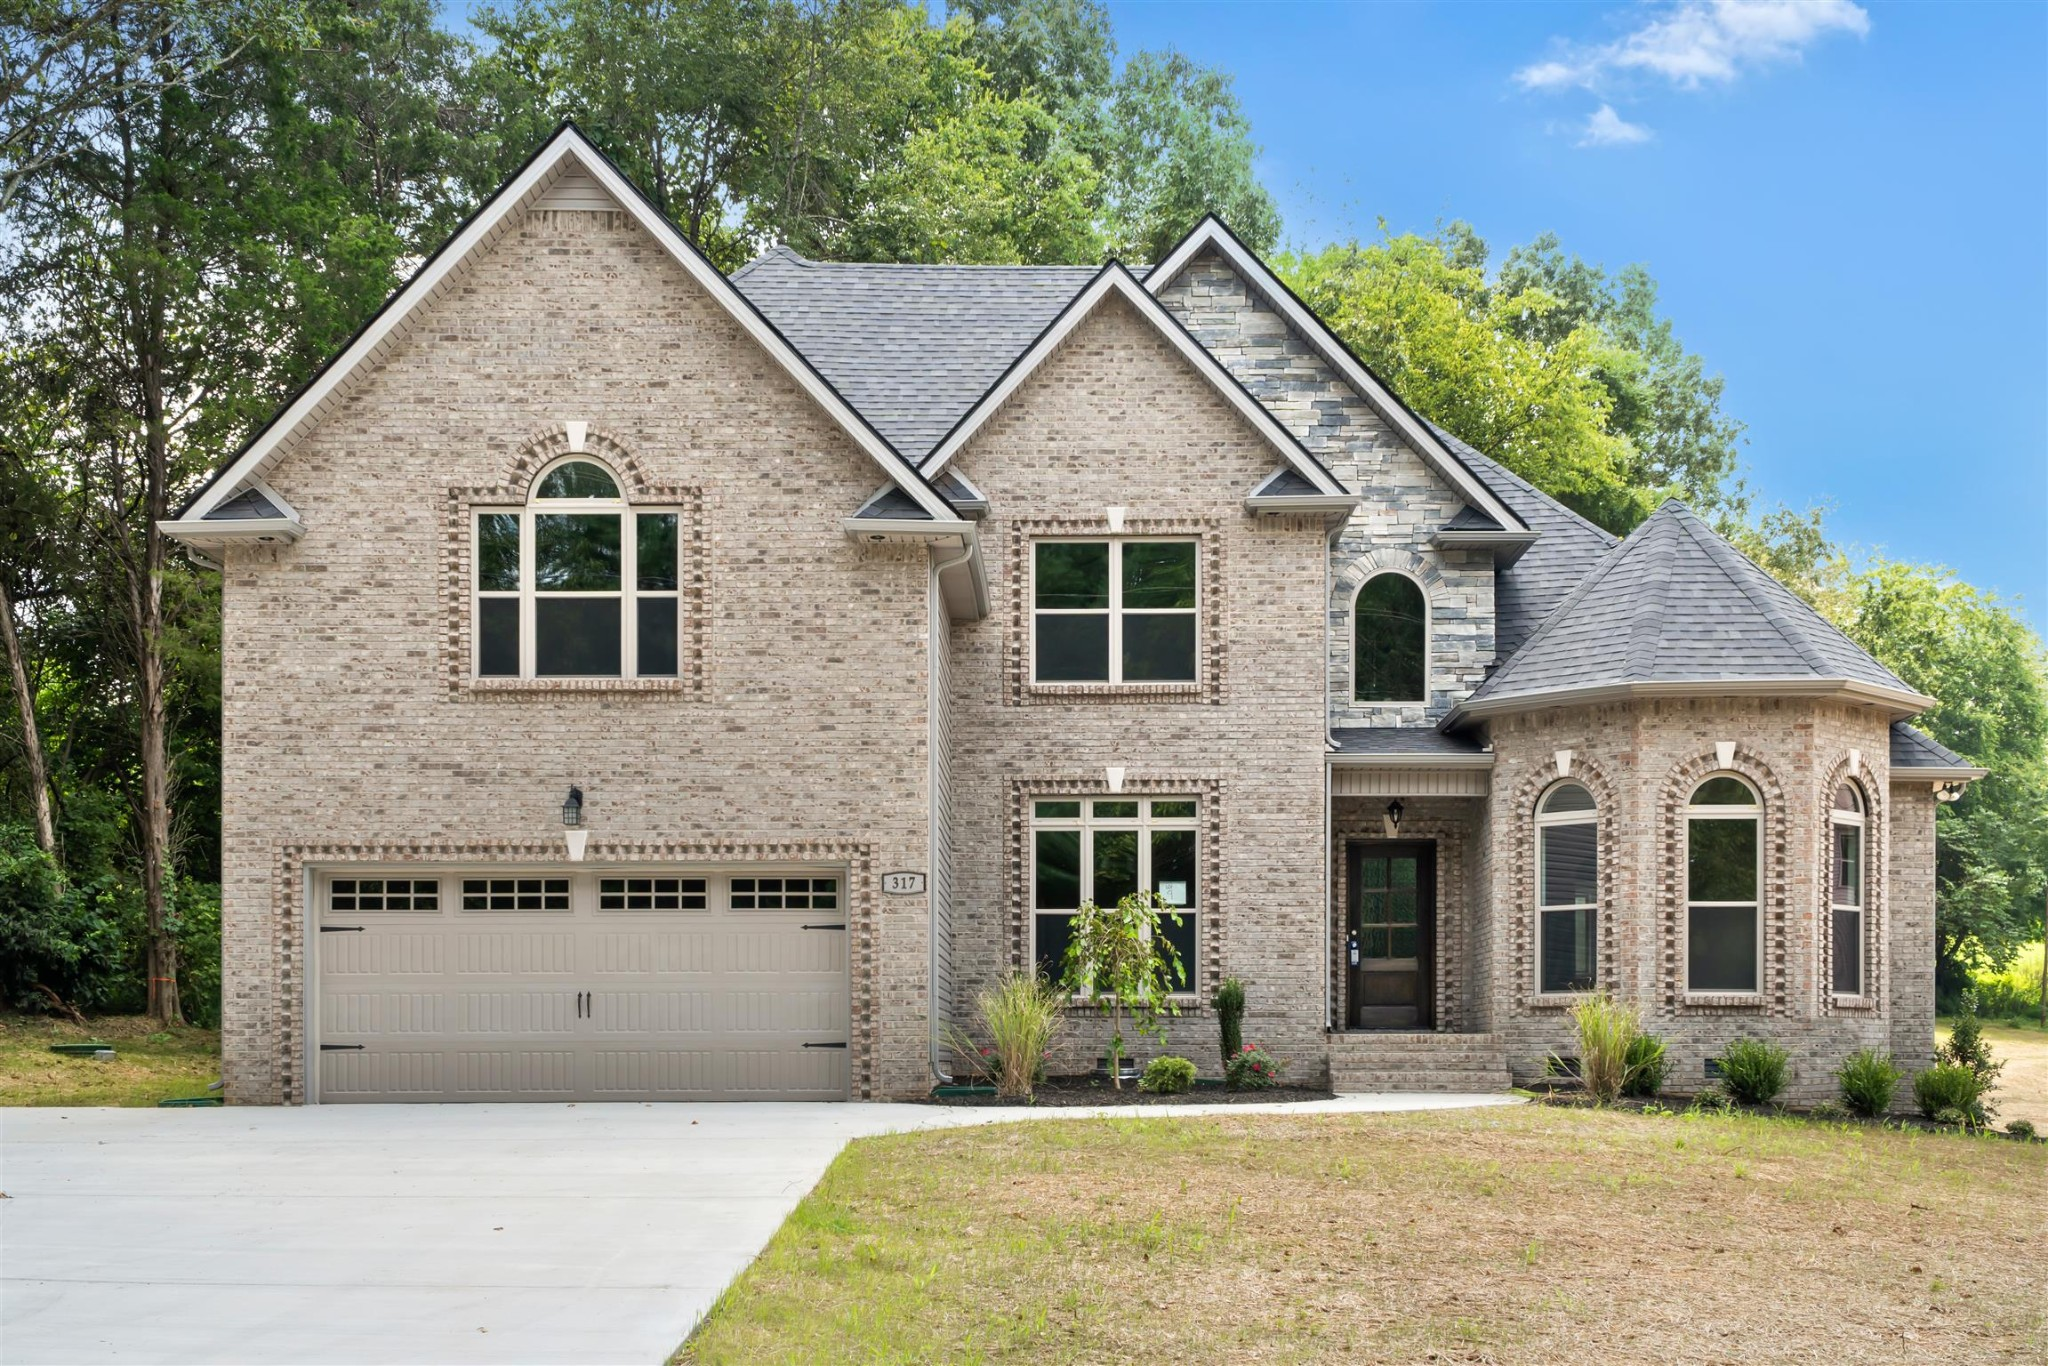 317 Rocky Ford Rd, Clarksville, TN 37040 - Clarksville, TN real estate listing